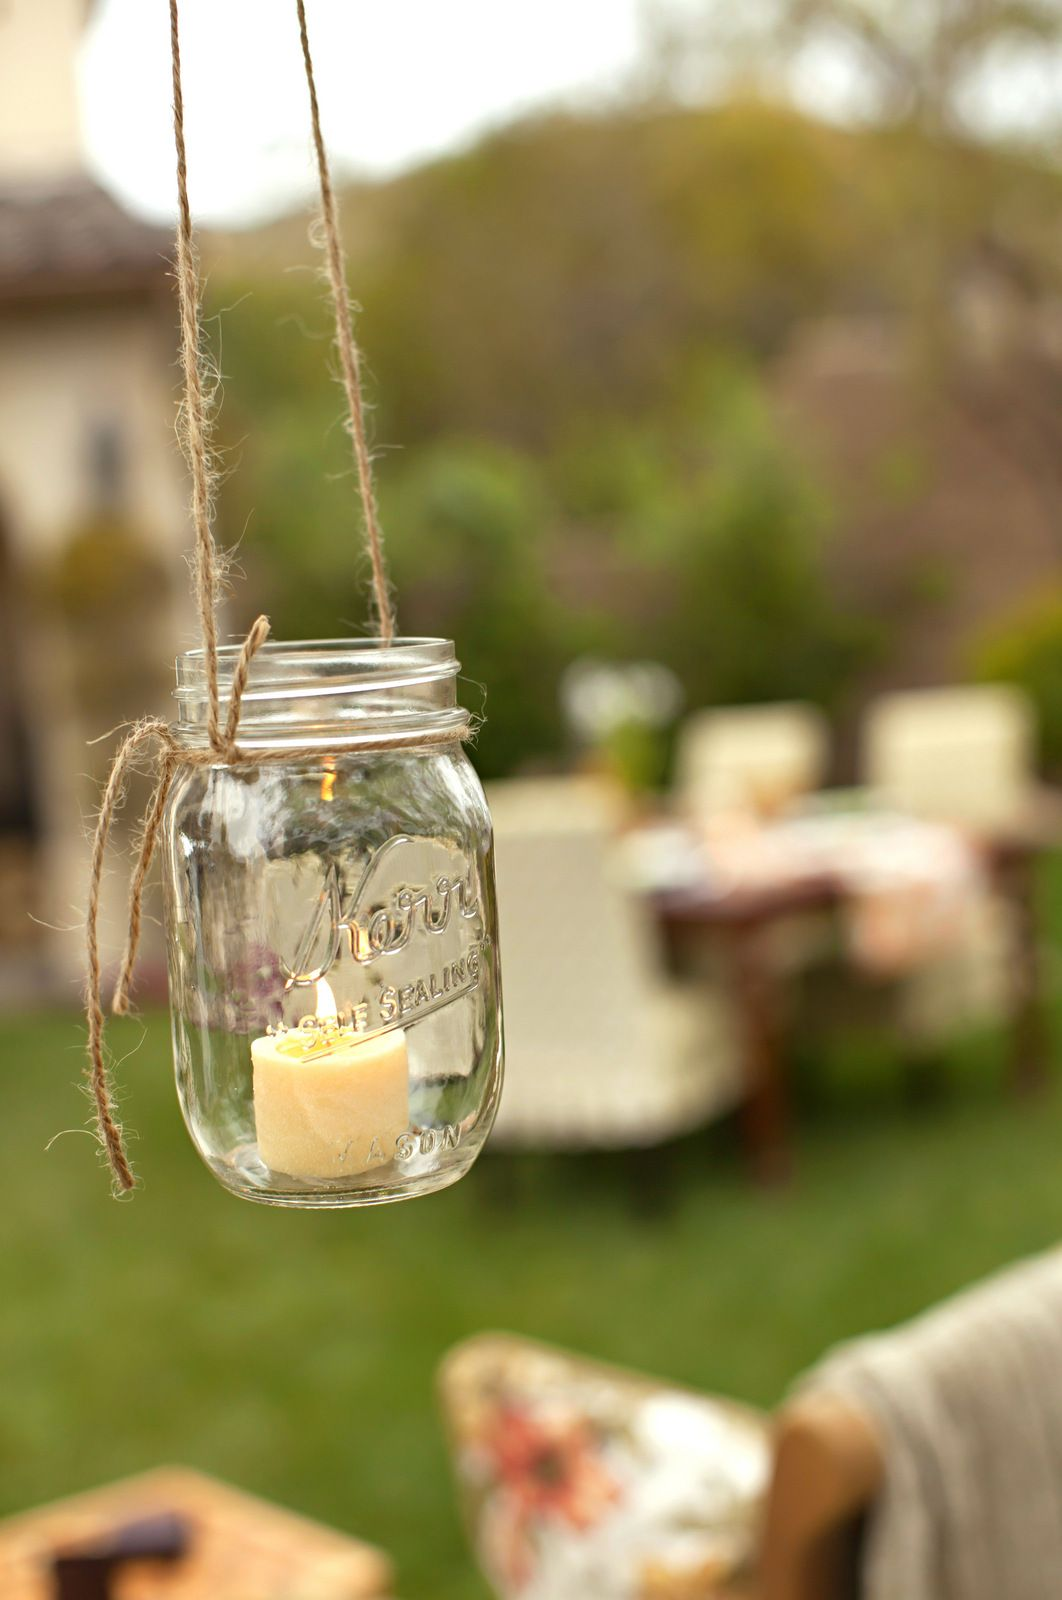 Light Up An Outdoor Party As The Sun Goes Down With Tea Lights In Mason Jars